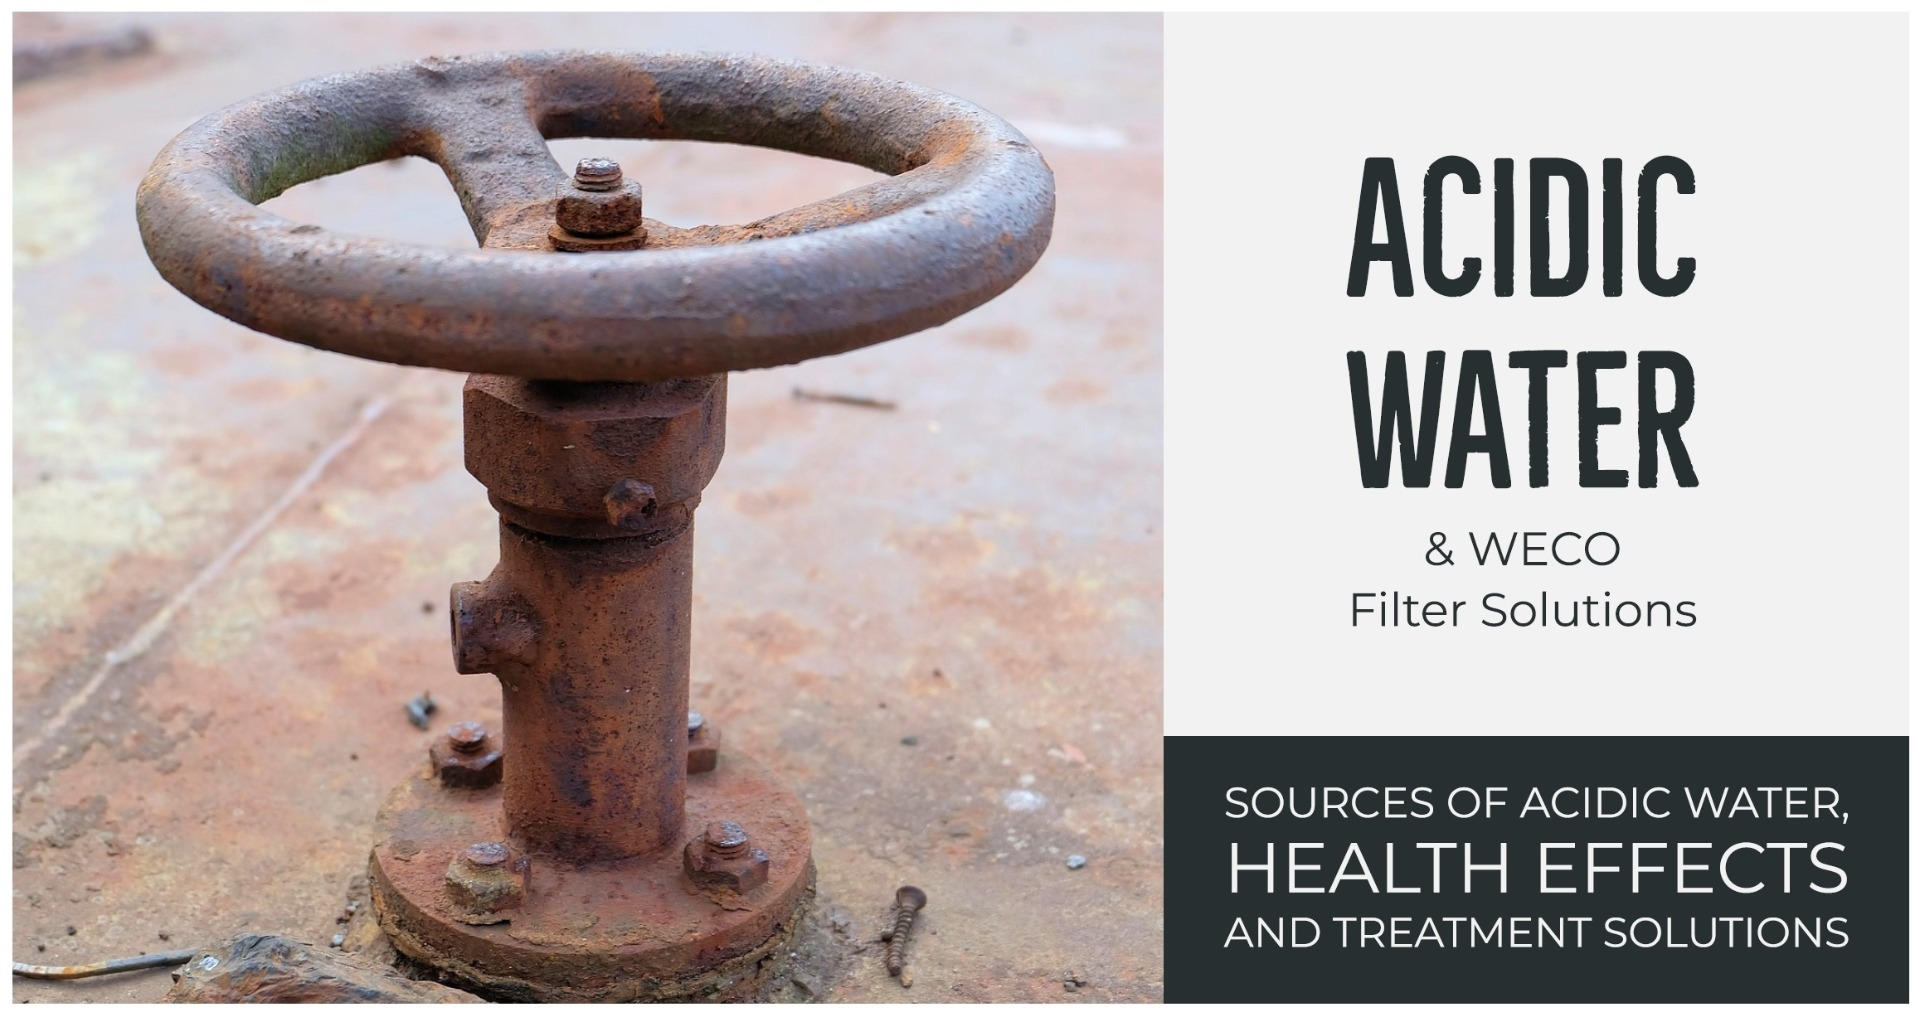 Acidic Water and WECO Solutions